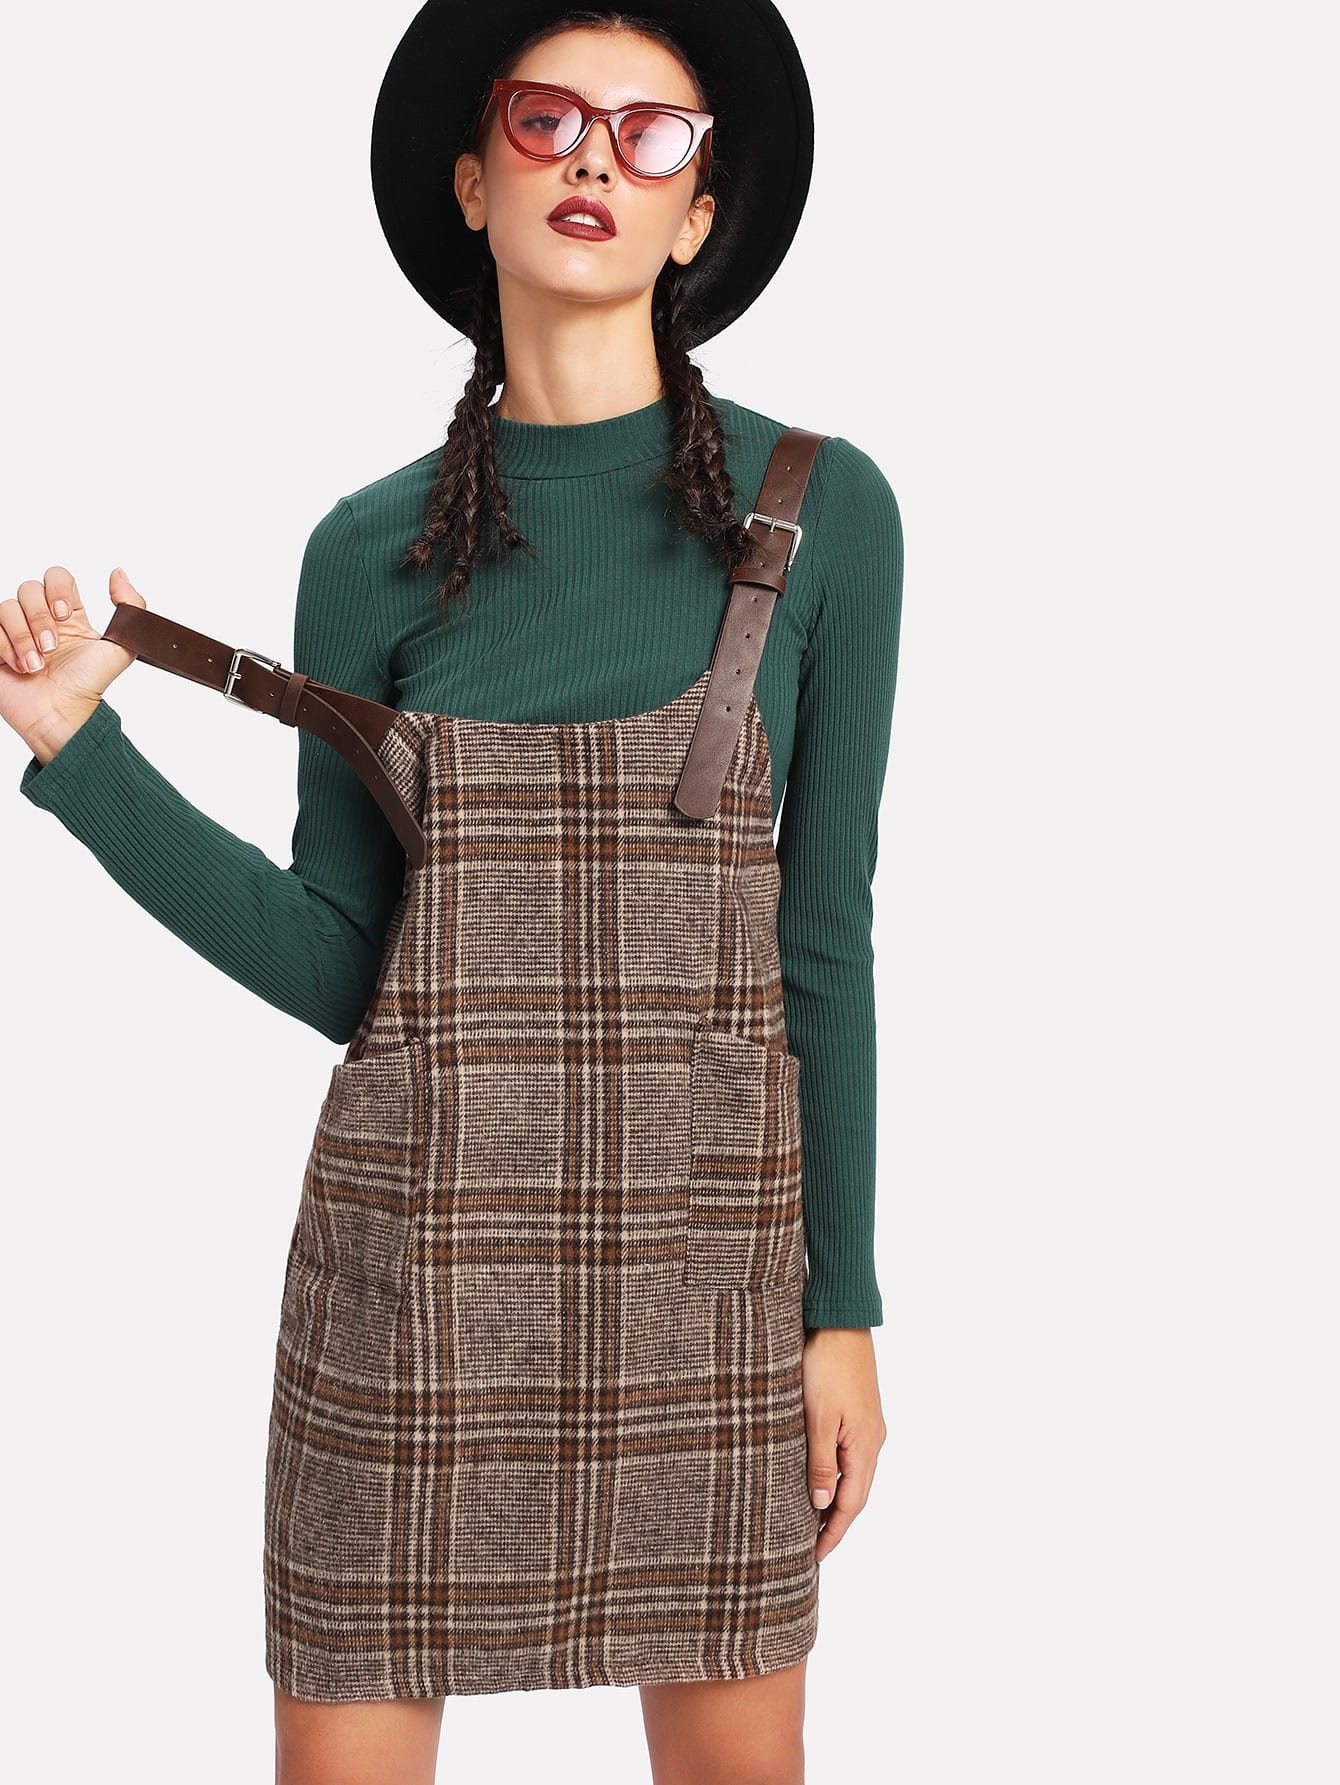 Tartan Plaid Buckle Detail Overall Dress dress171124102